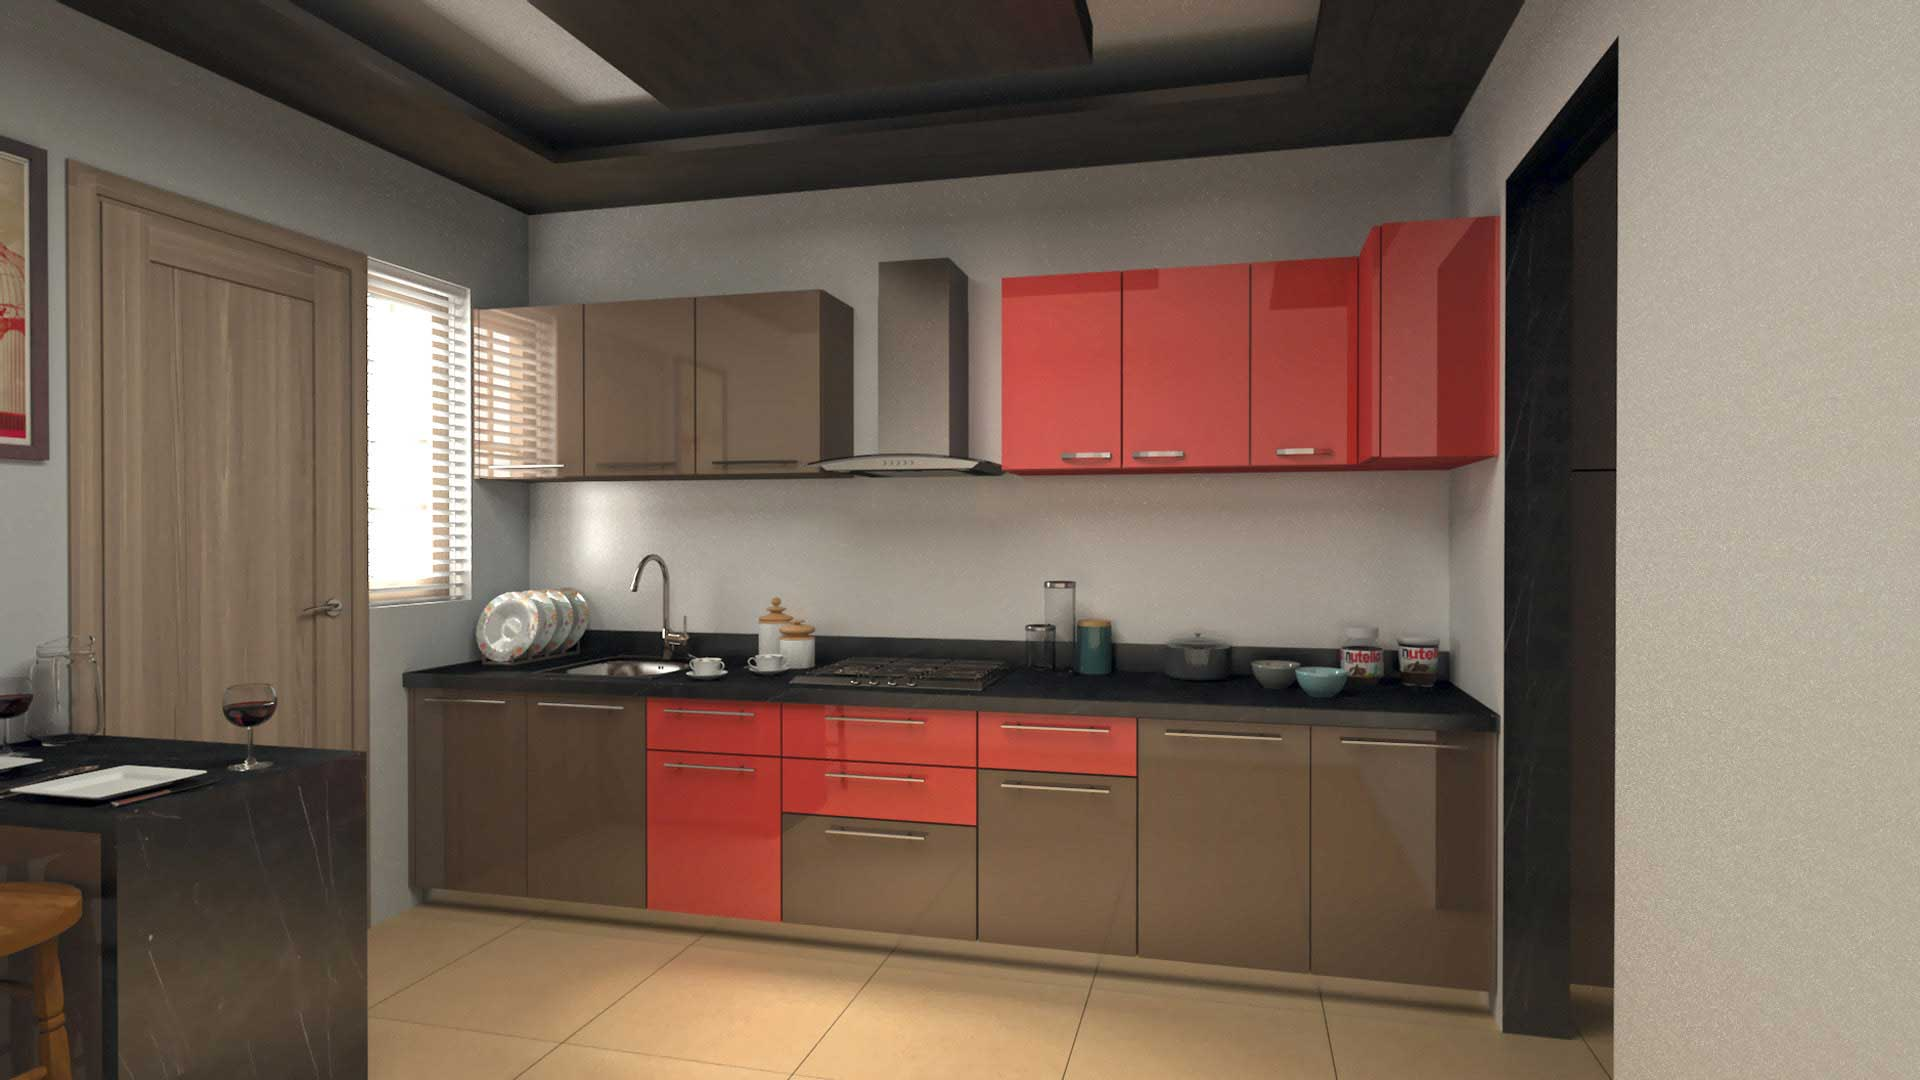 Modular kitchens ahmedabad buy modular kitchens online for Online modular kitchen designs